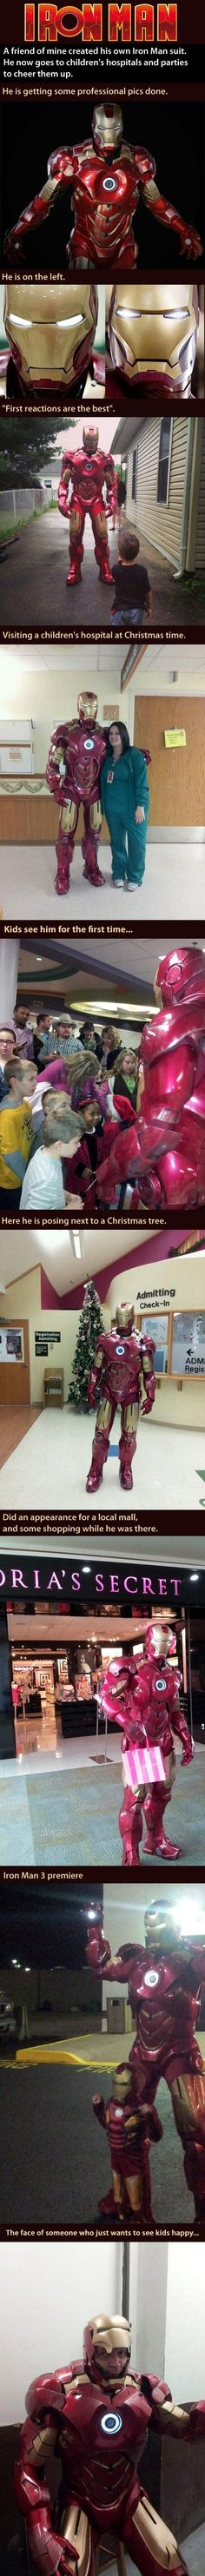 Iron Man with a heart - funny pictures - funny photos - funny images - funny pics - funny quotes - funny animals @ humor